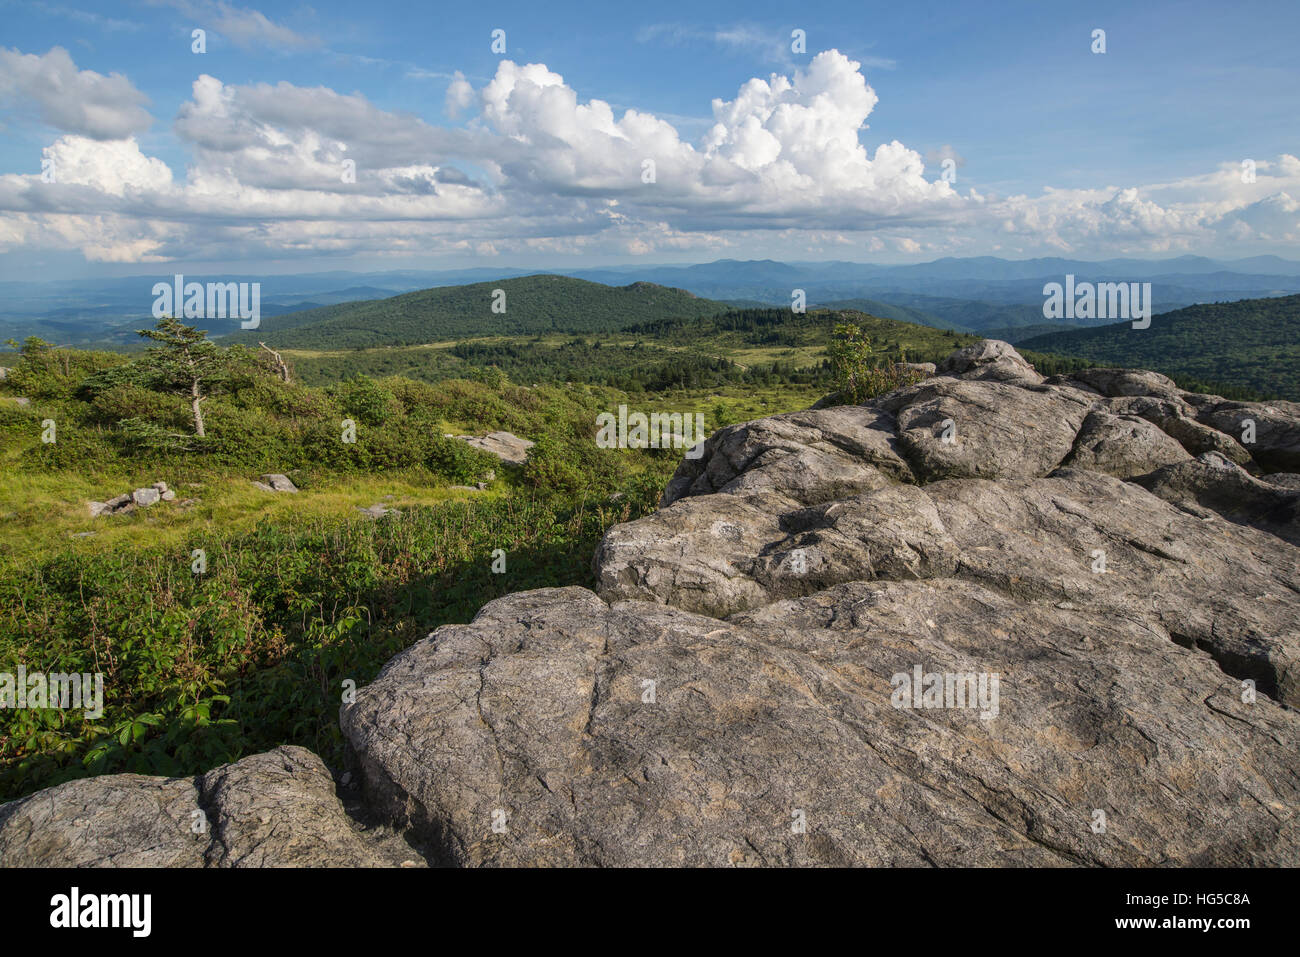 View from one of the many rocky summits of Grayson Highlands State Park, Virginia, United States of America, North - Stock Image